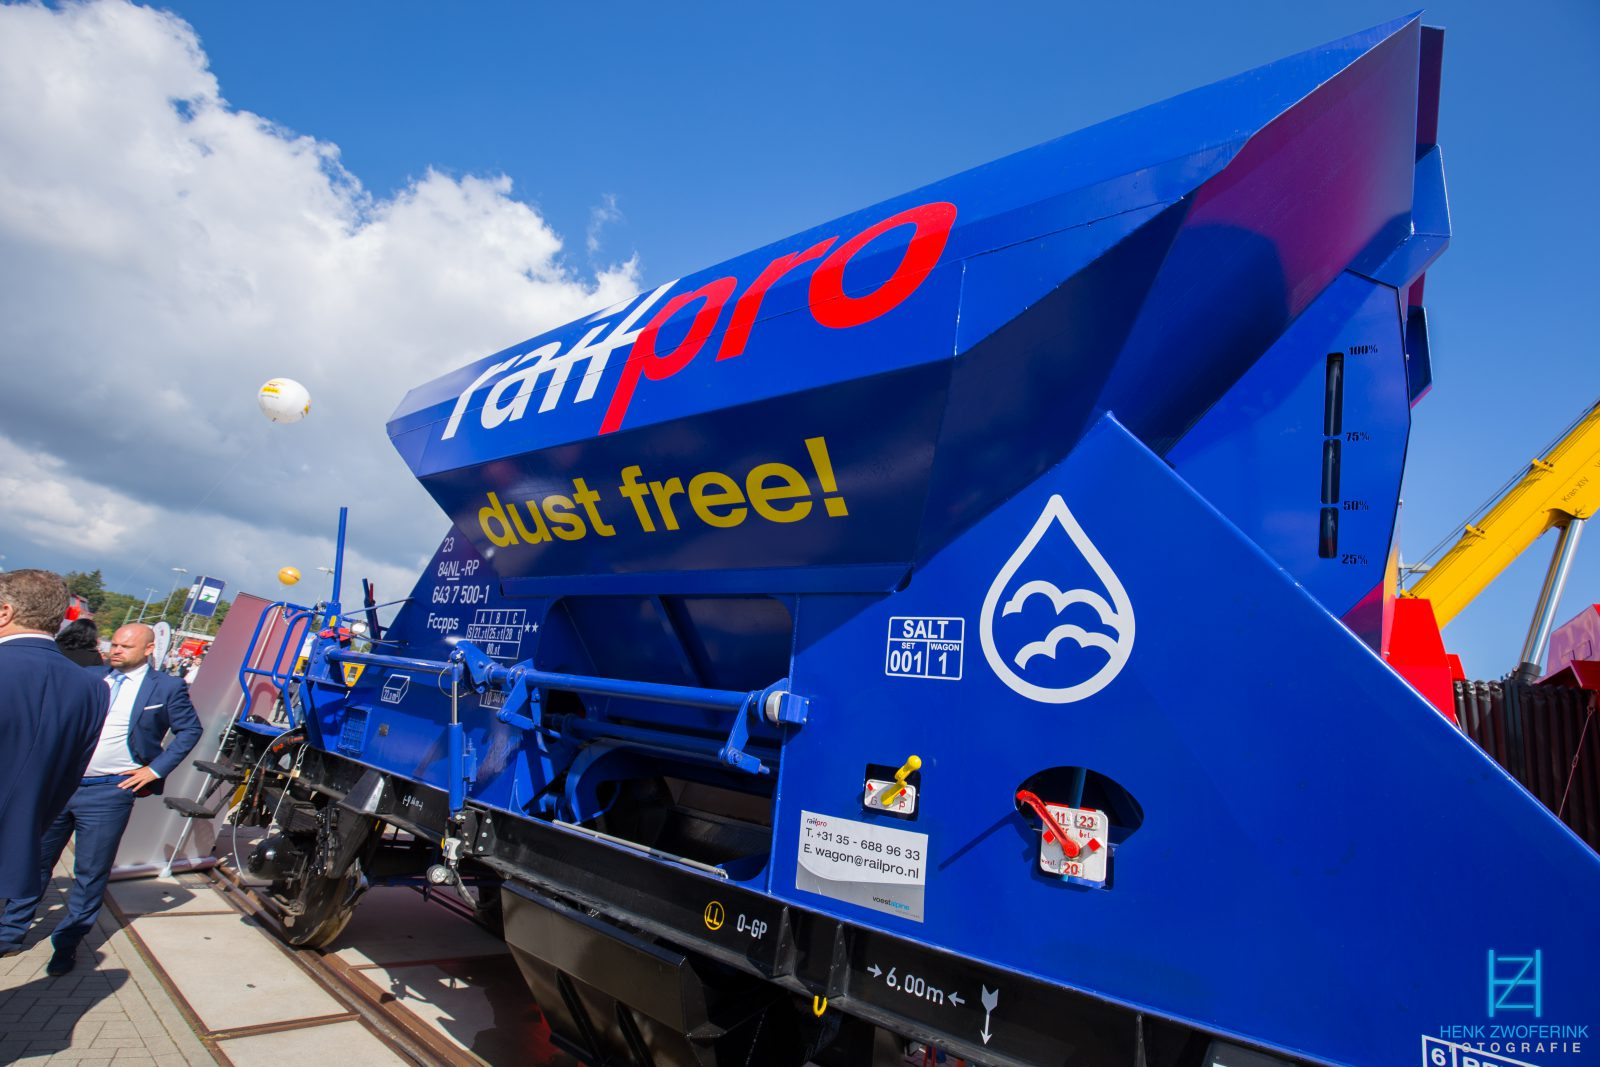 Railpro dust free - Henk Zwoferink